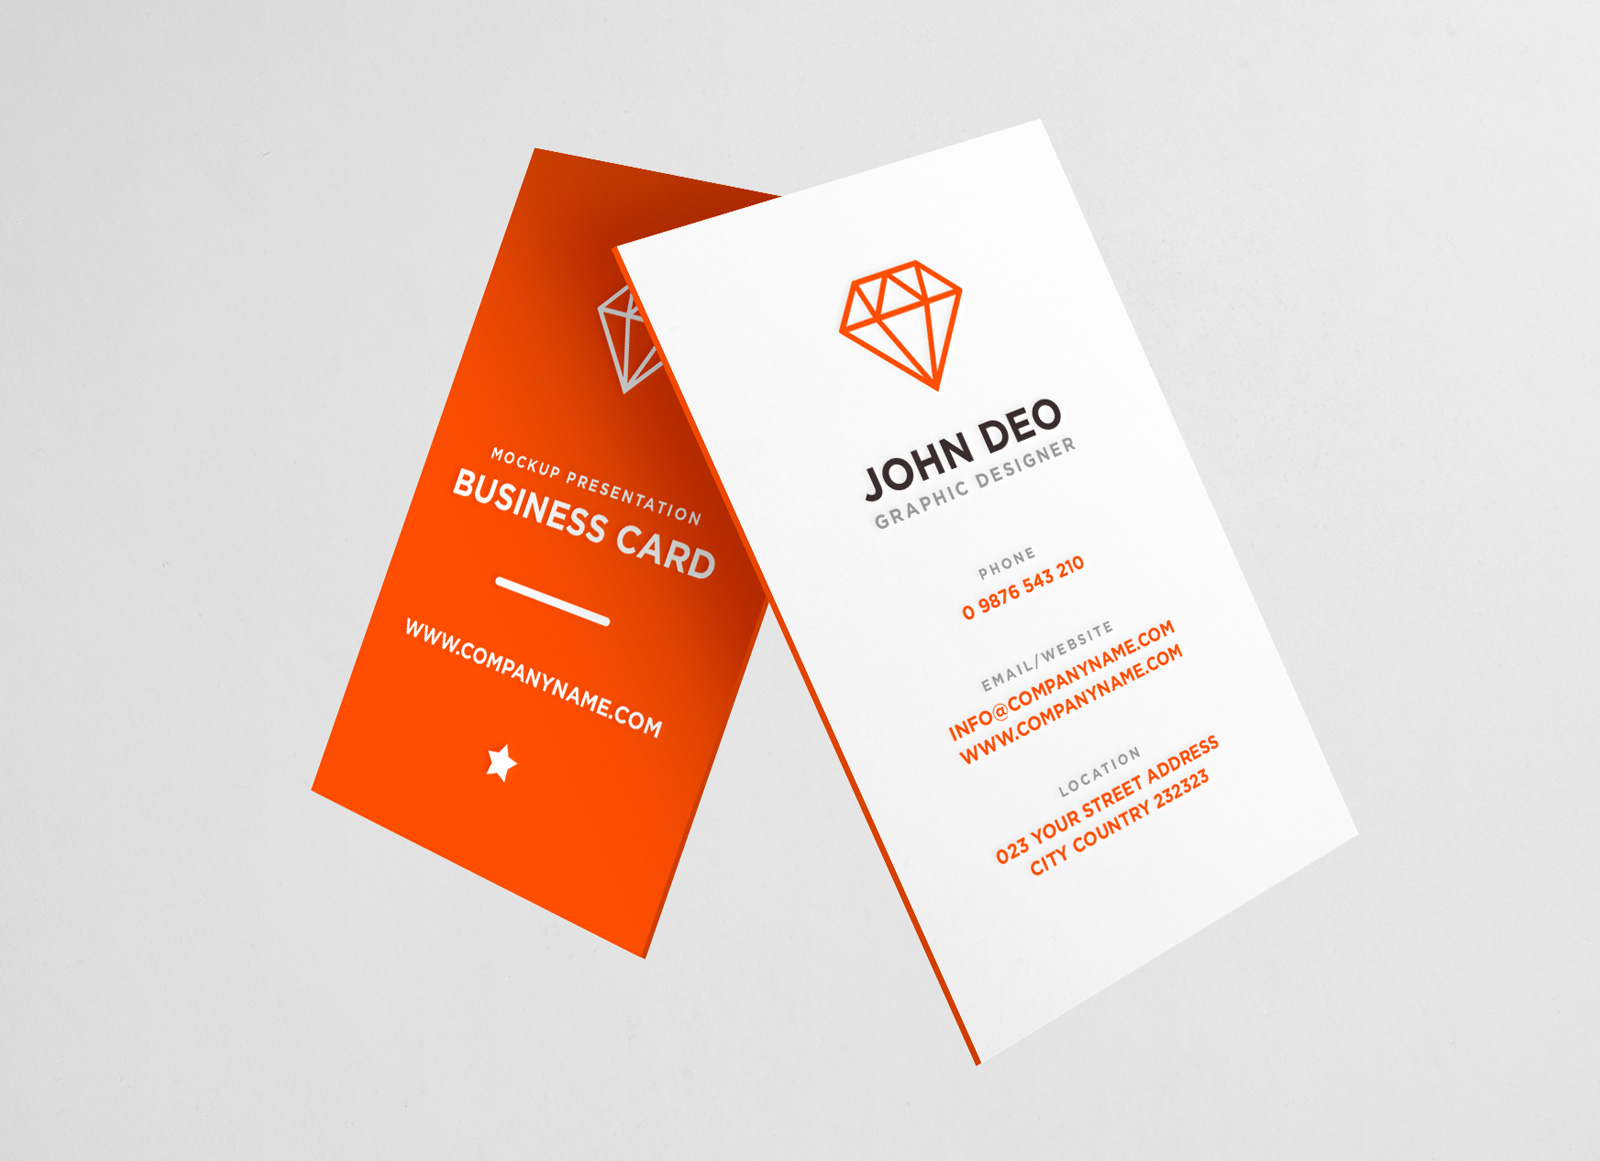 Free Vertical Business Card Mockup PSD - Good Mockups